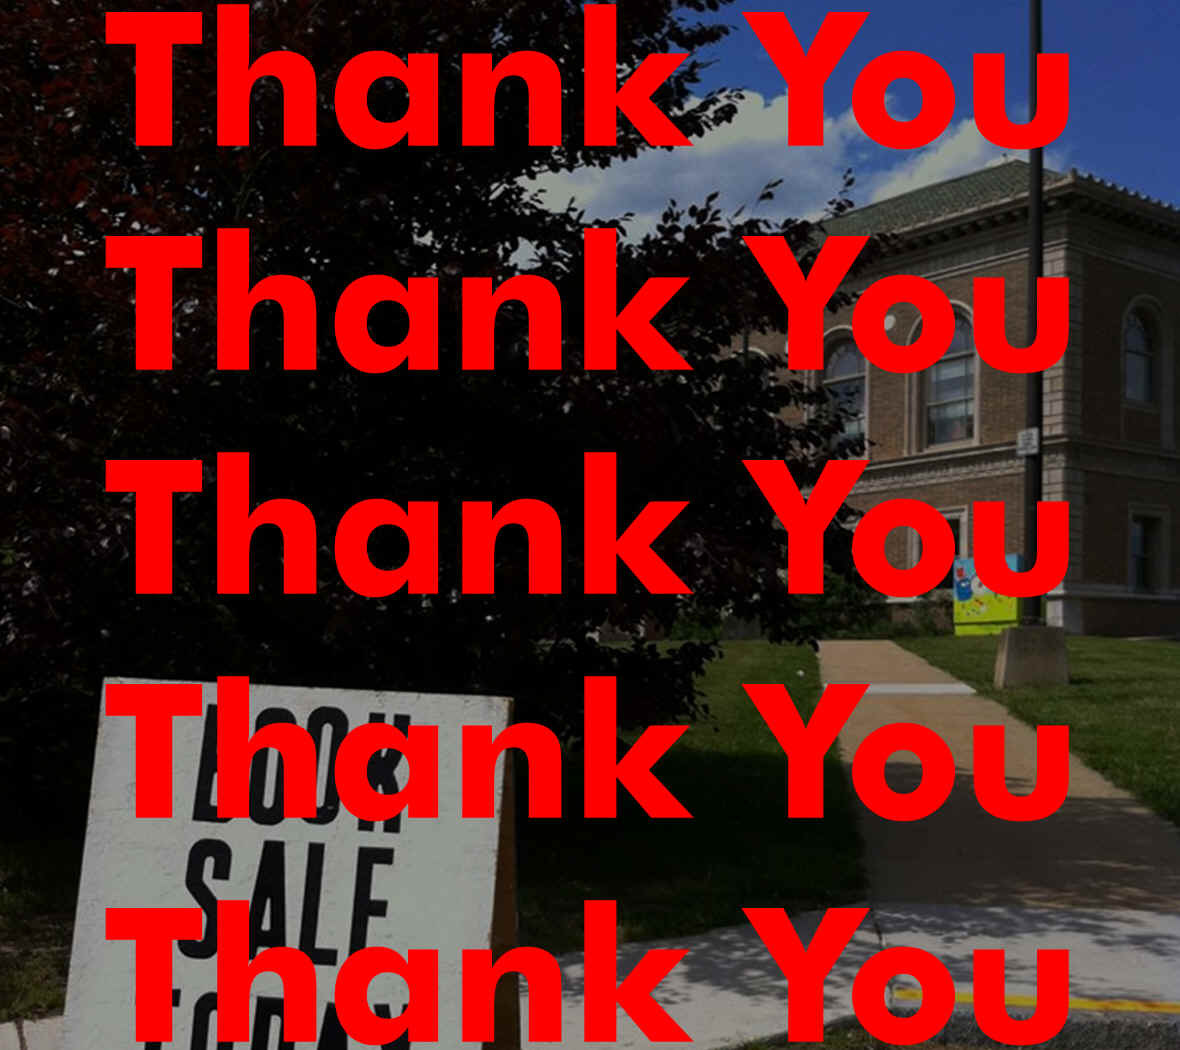 somervillepubliclibraryfriends:  Thank you! http://somerville.patch.com/announcements/thank-you-to-all-the-library-book-sale-volunteers-543c018f